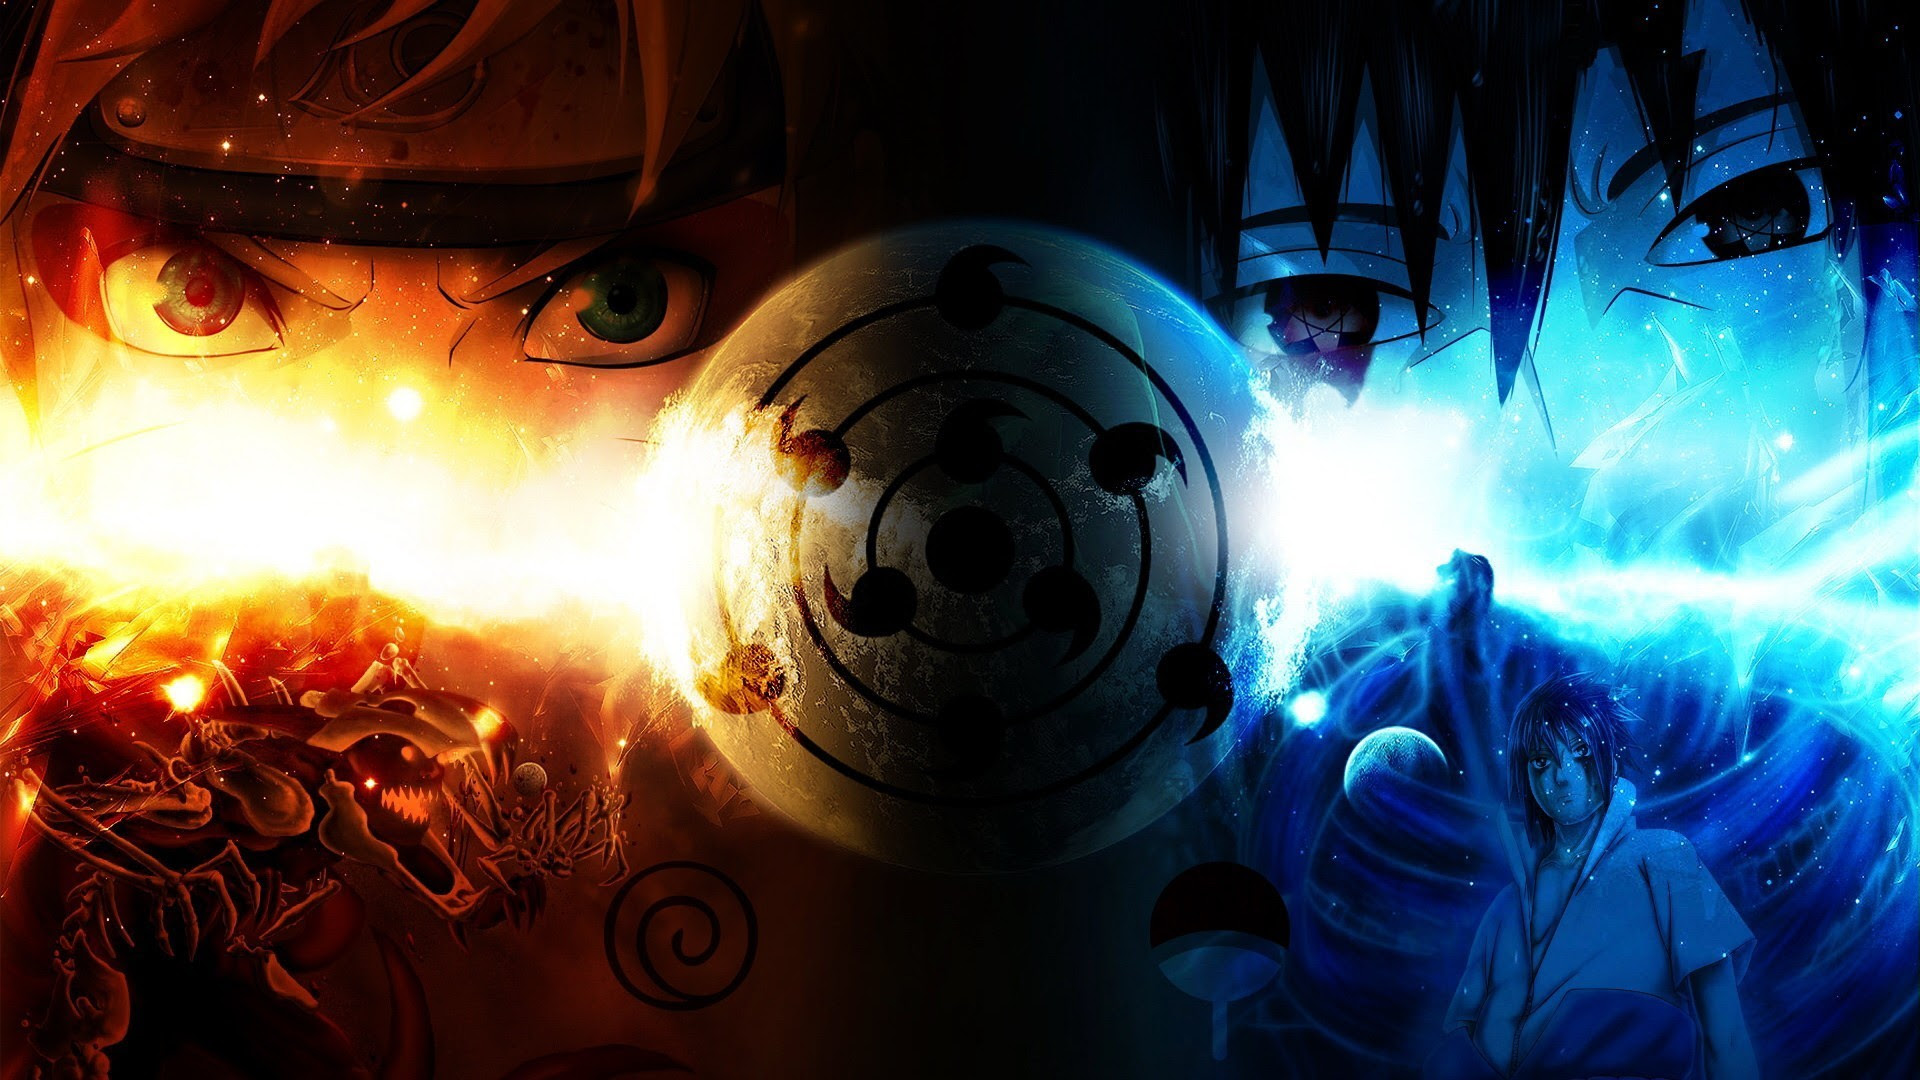 HD Naruto Wallpapers 72+ images